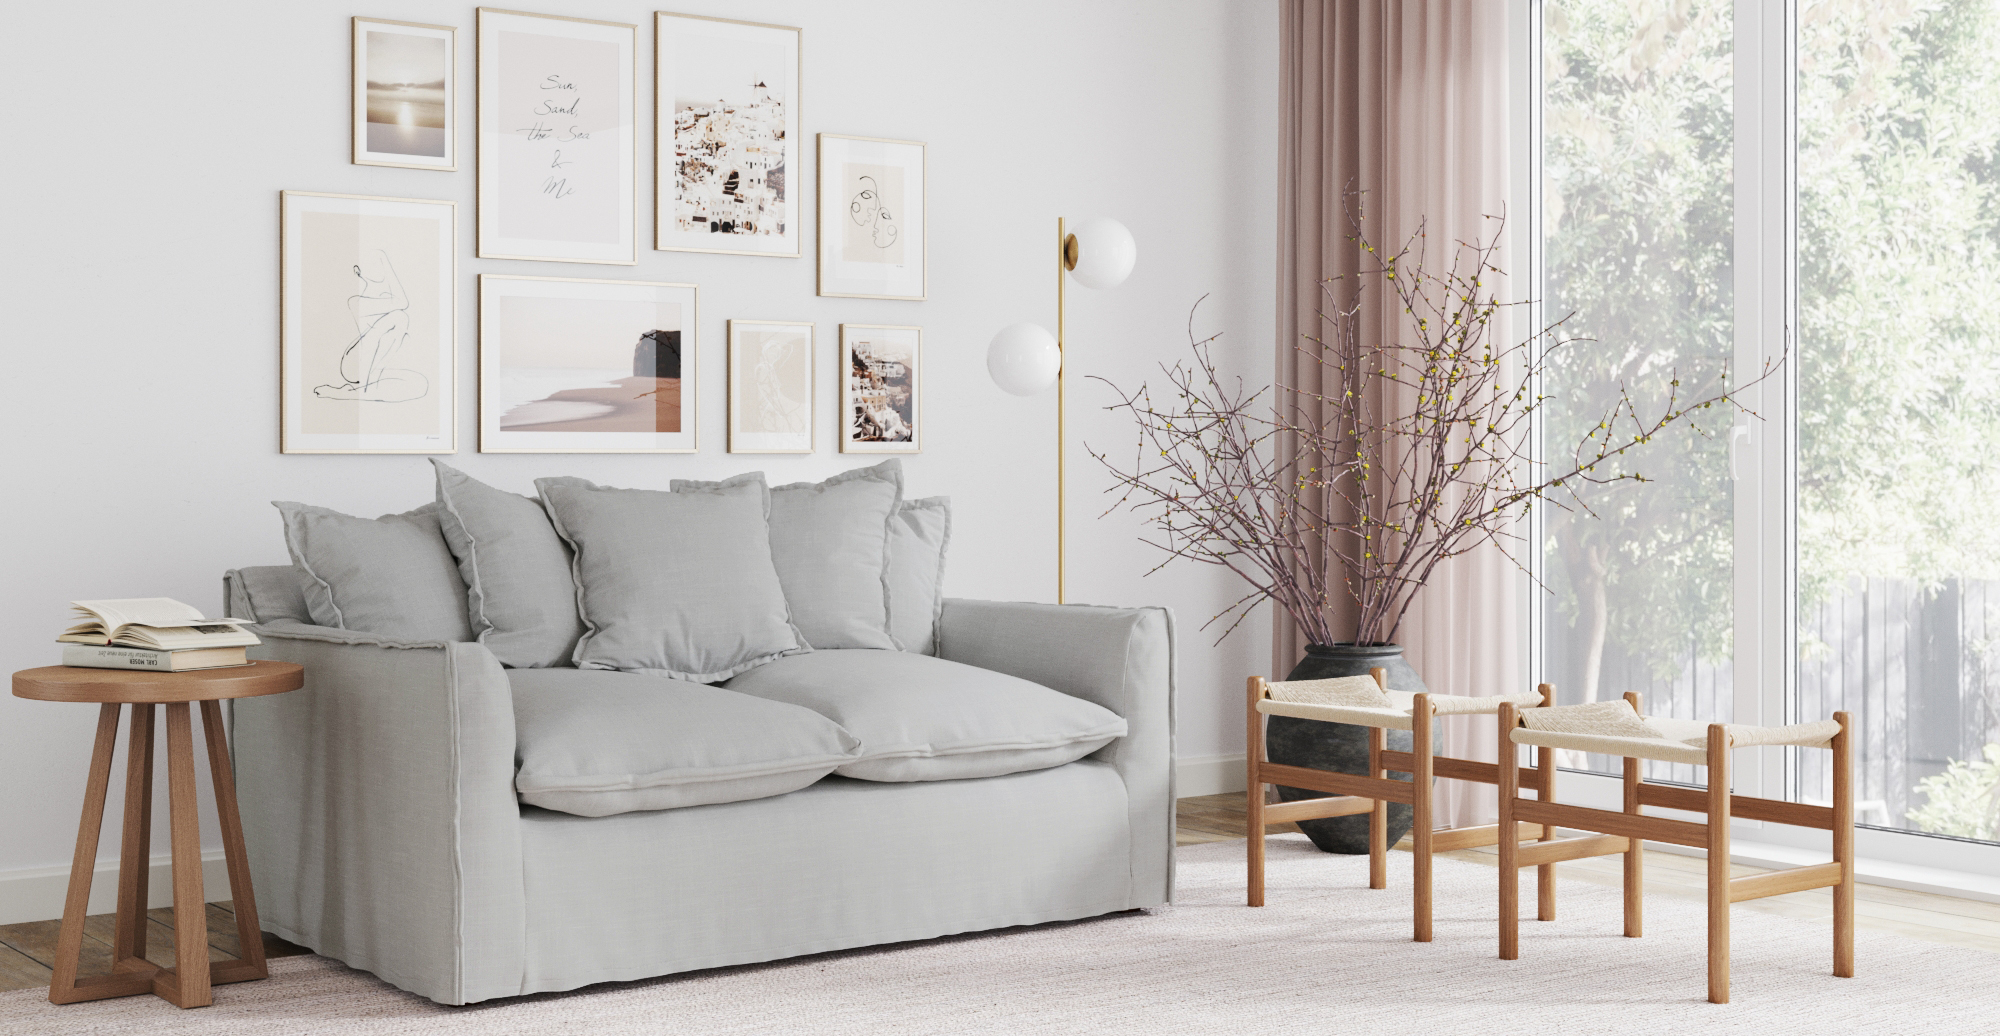 Brosa Palermo 2 Seater Sofa styled in Scandinavian living room